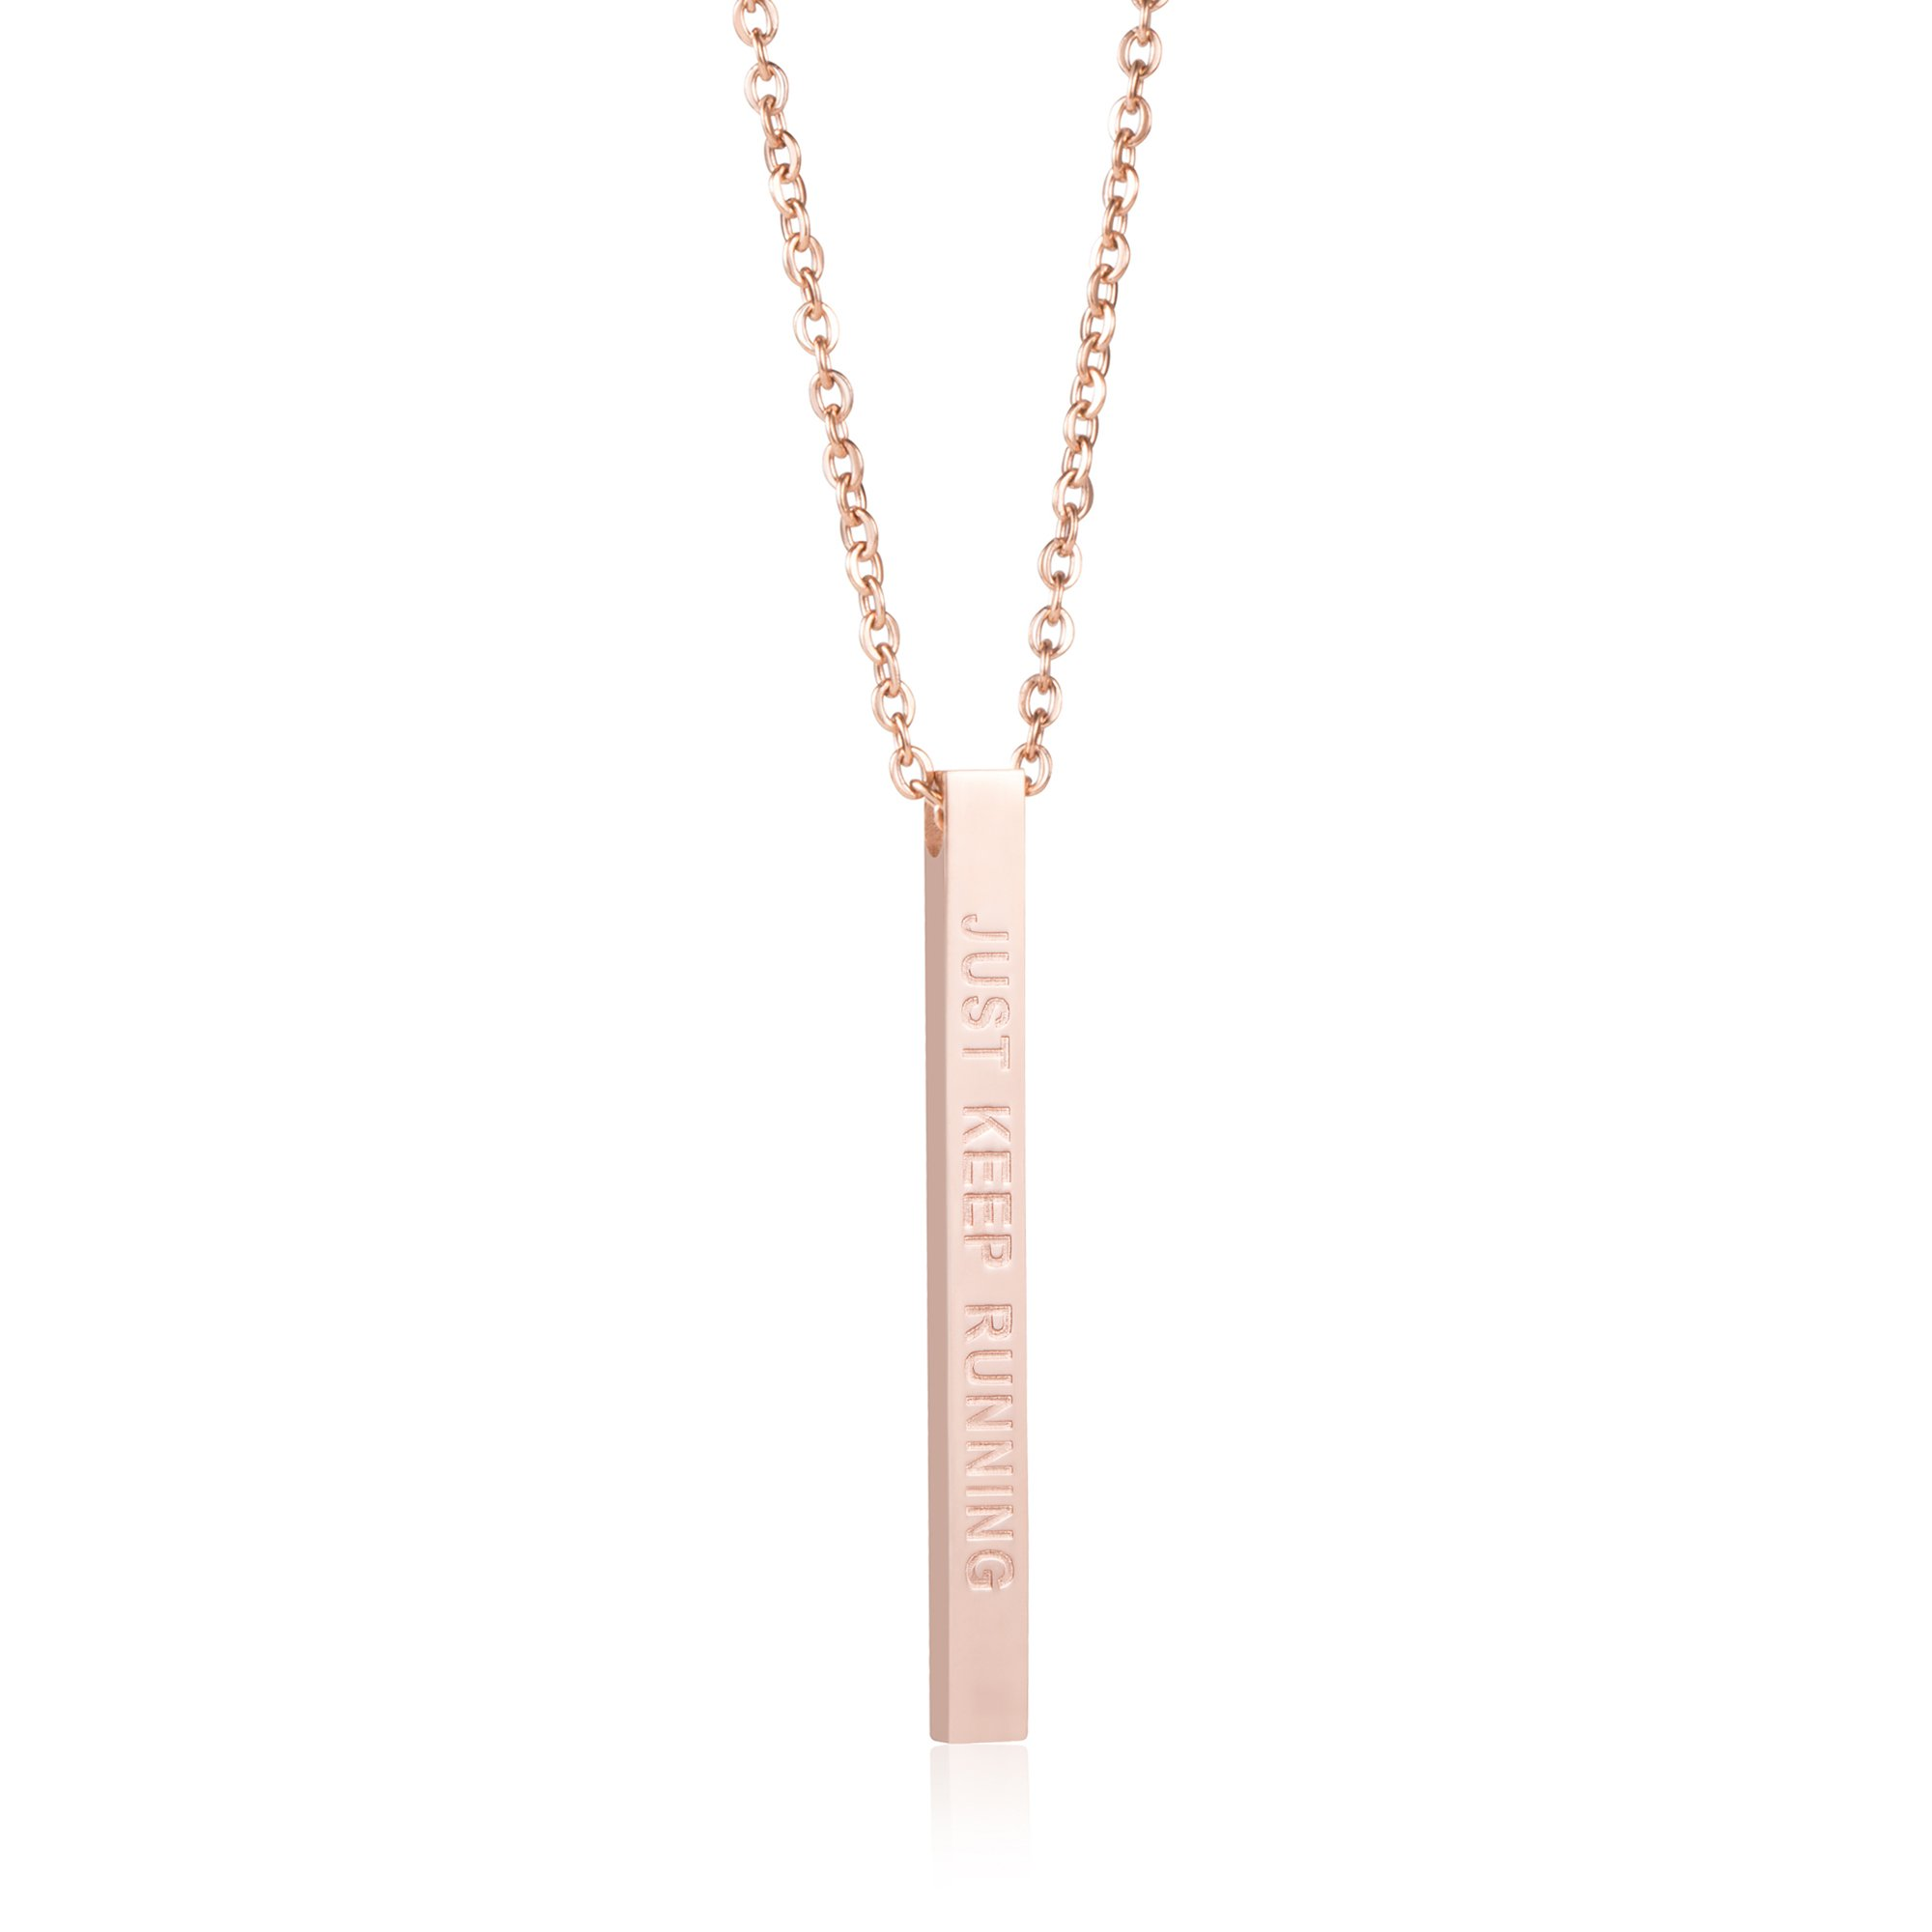 Joycuff Runner Gift Encouragement Jewelry for Women Vertical Bar Necklace Just Keep Running by Joycuff (Image #5)